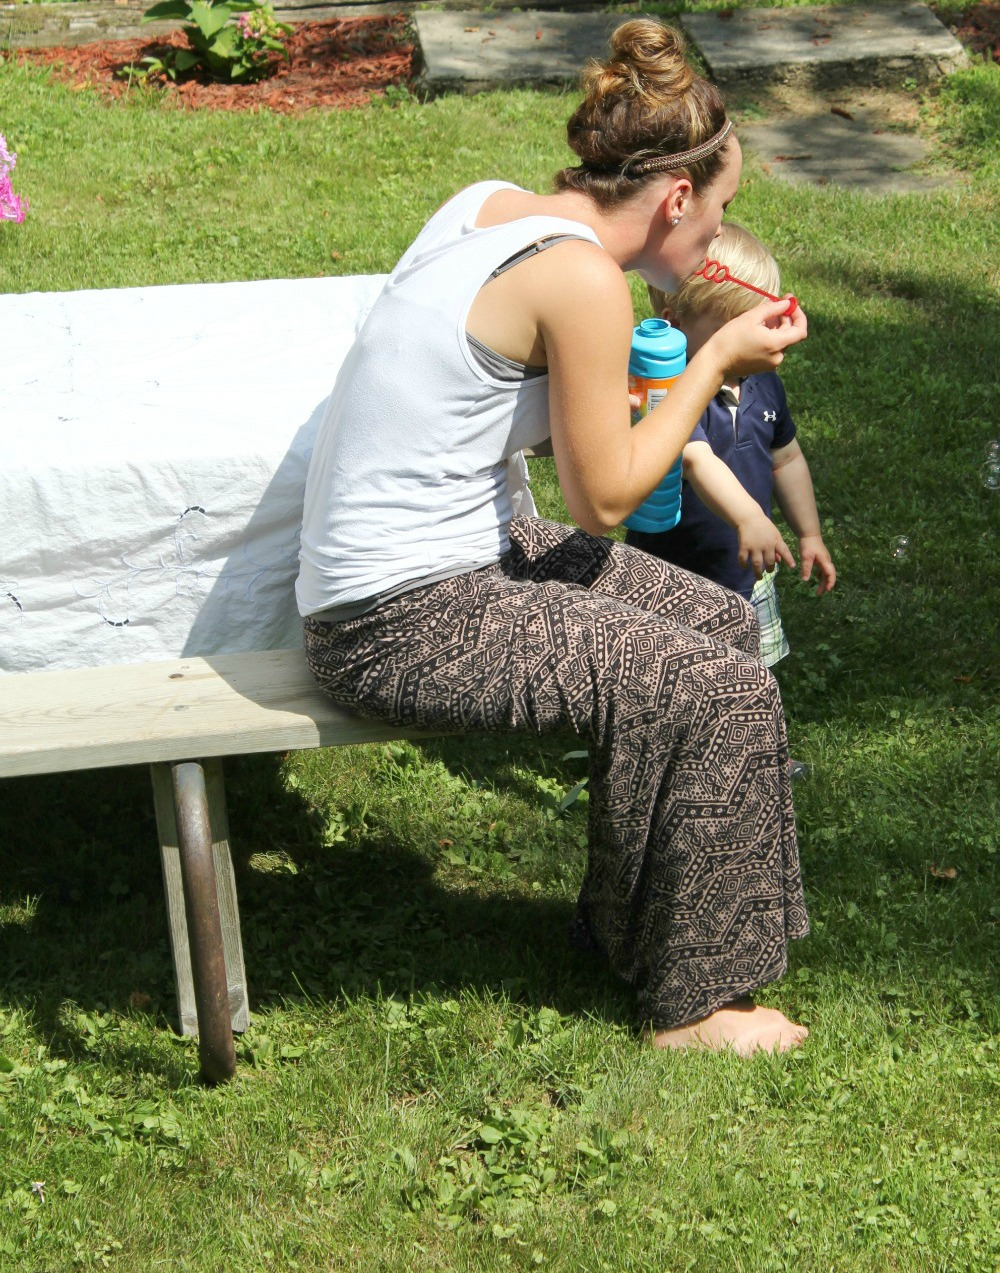 Mandy and Max blowing bubbles